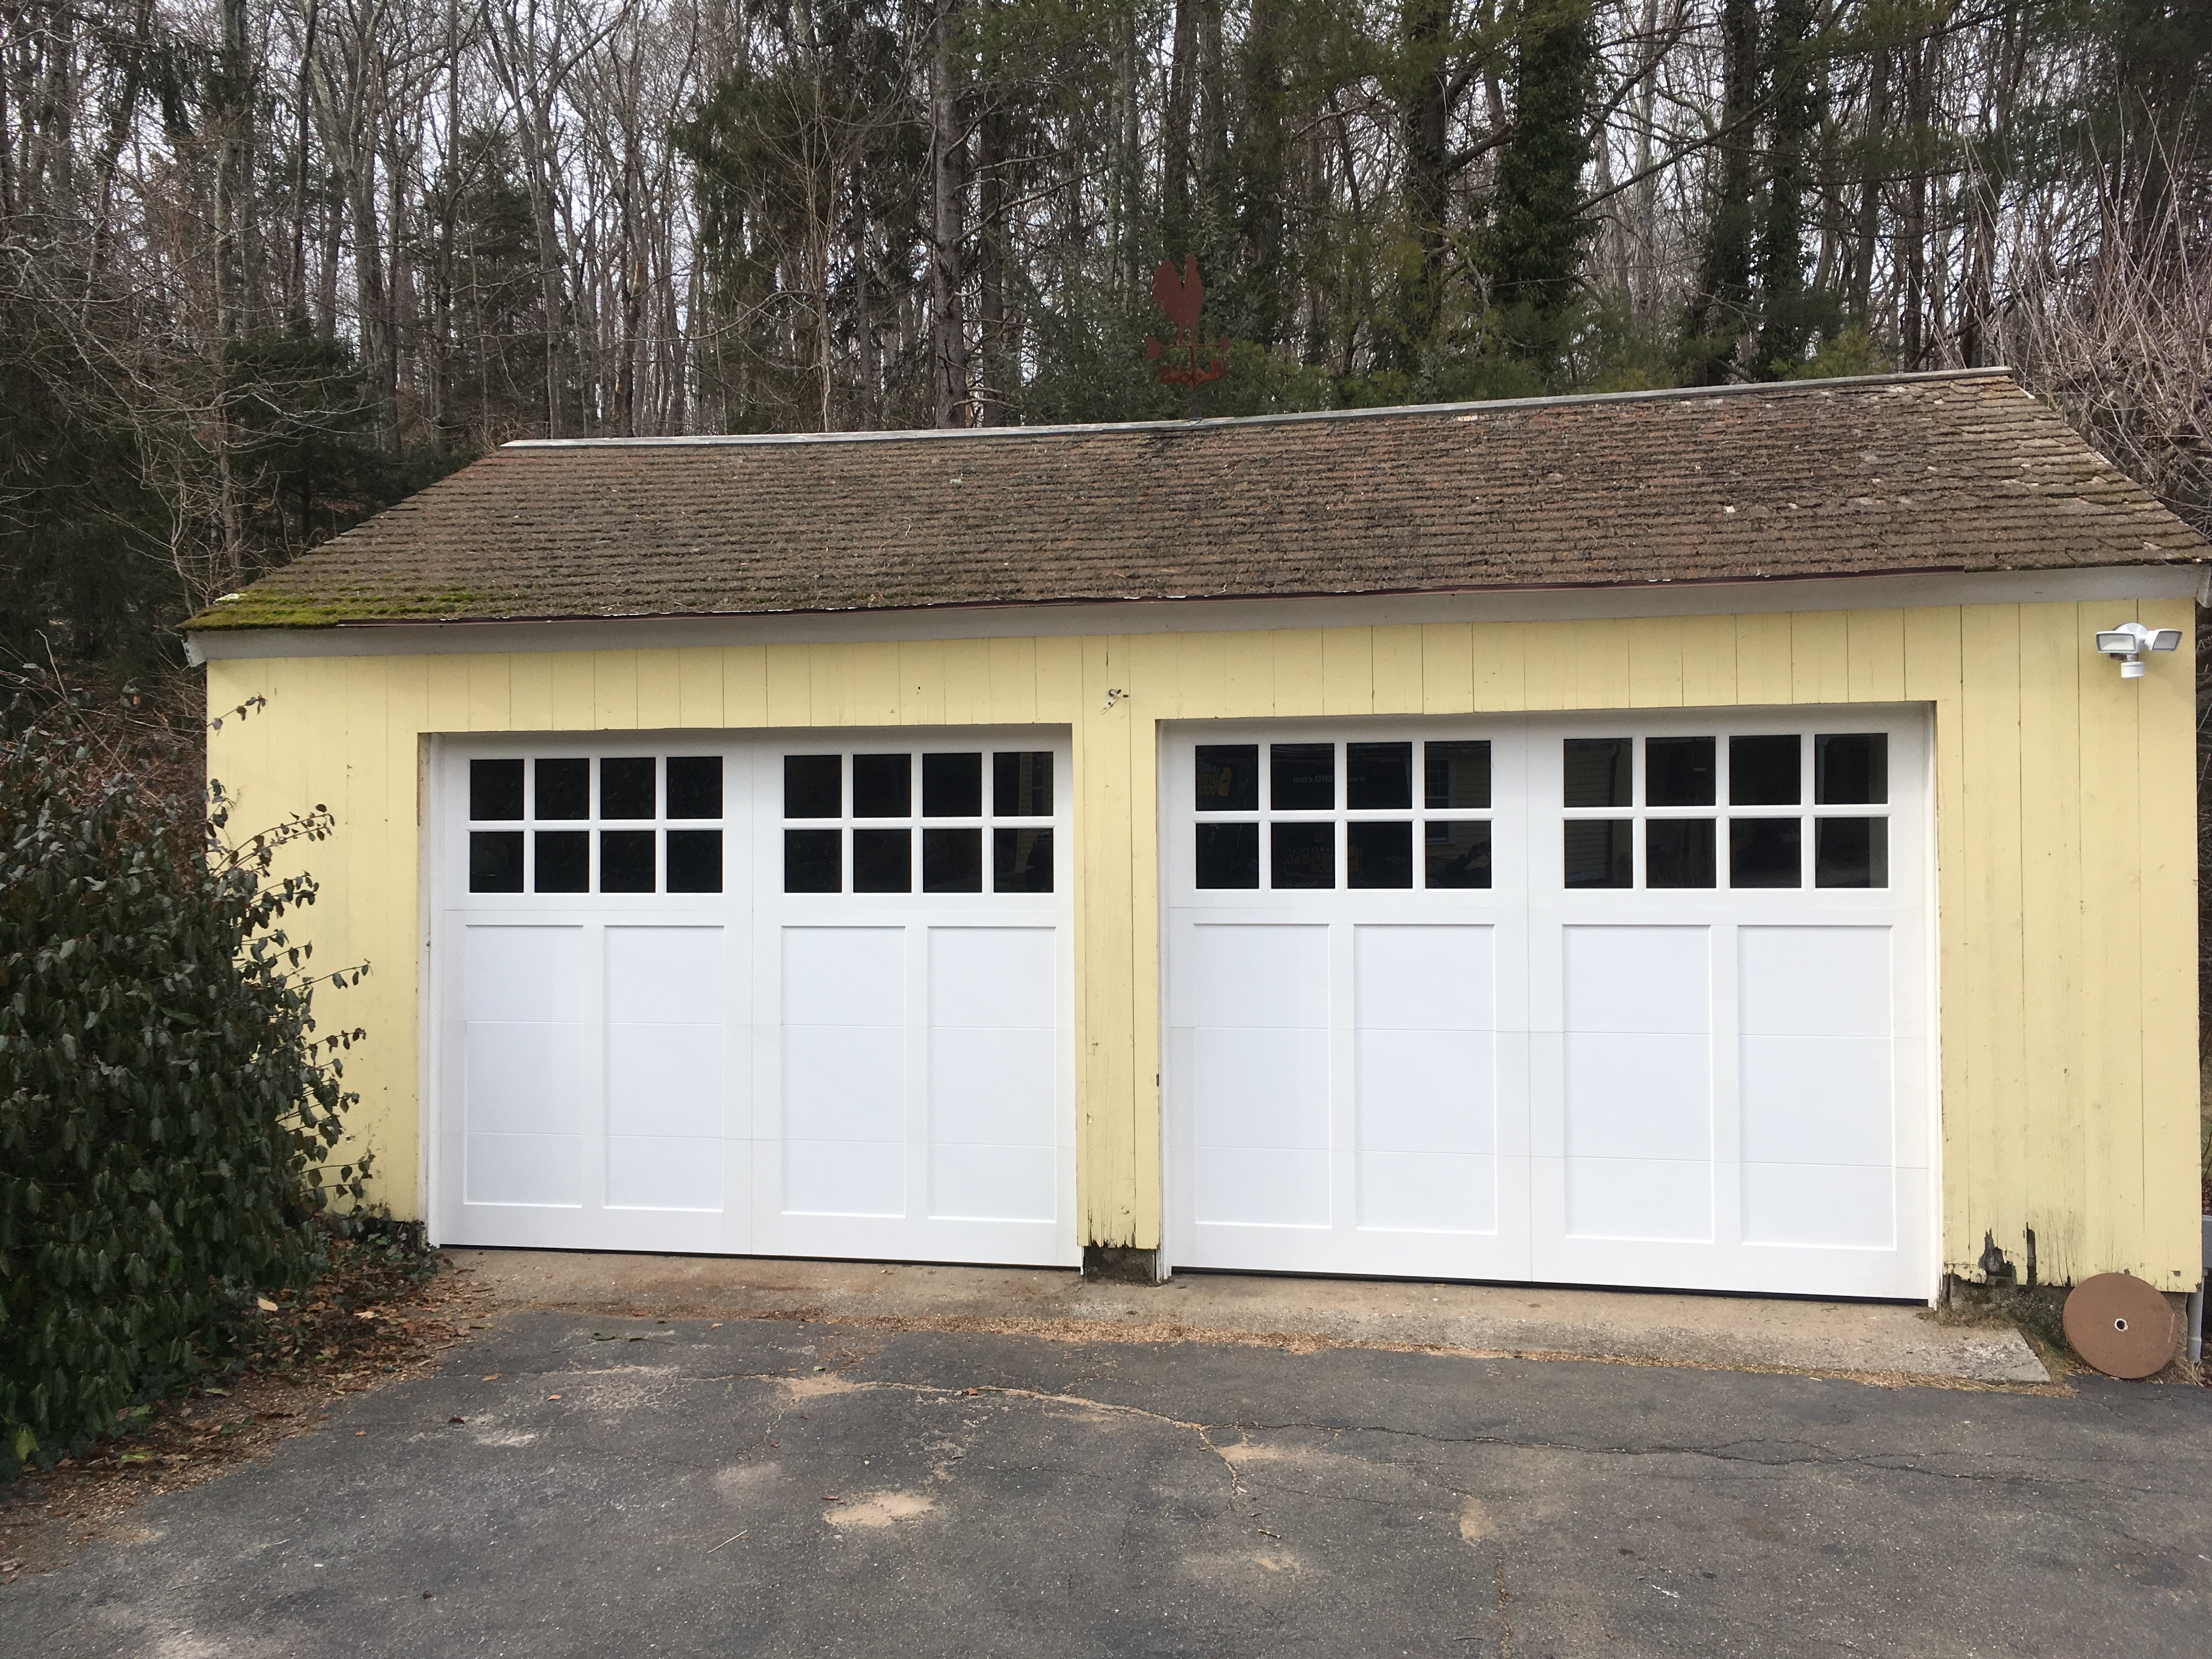 garage x canyon continental door photo nggallery us wo about slideshow residential ridge gallery